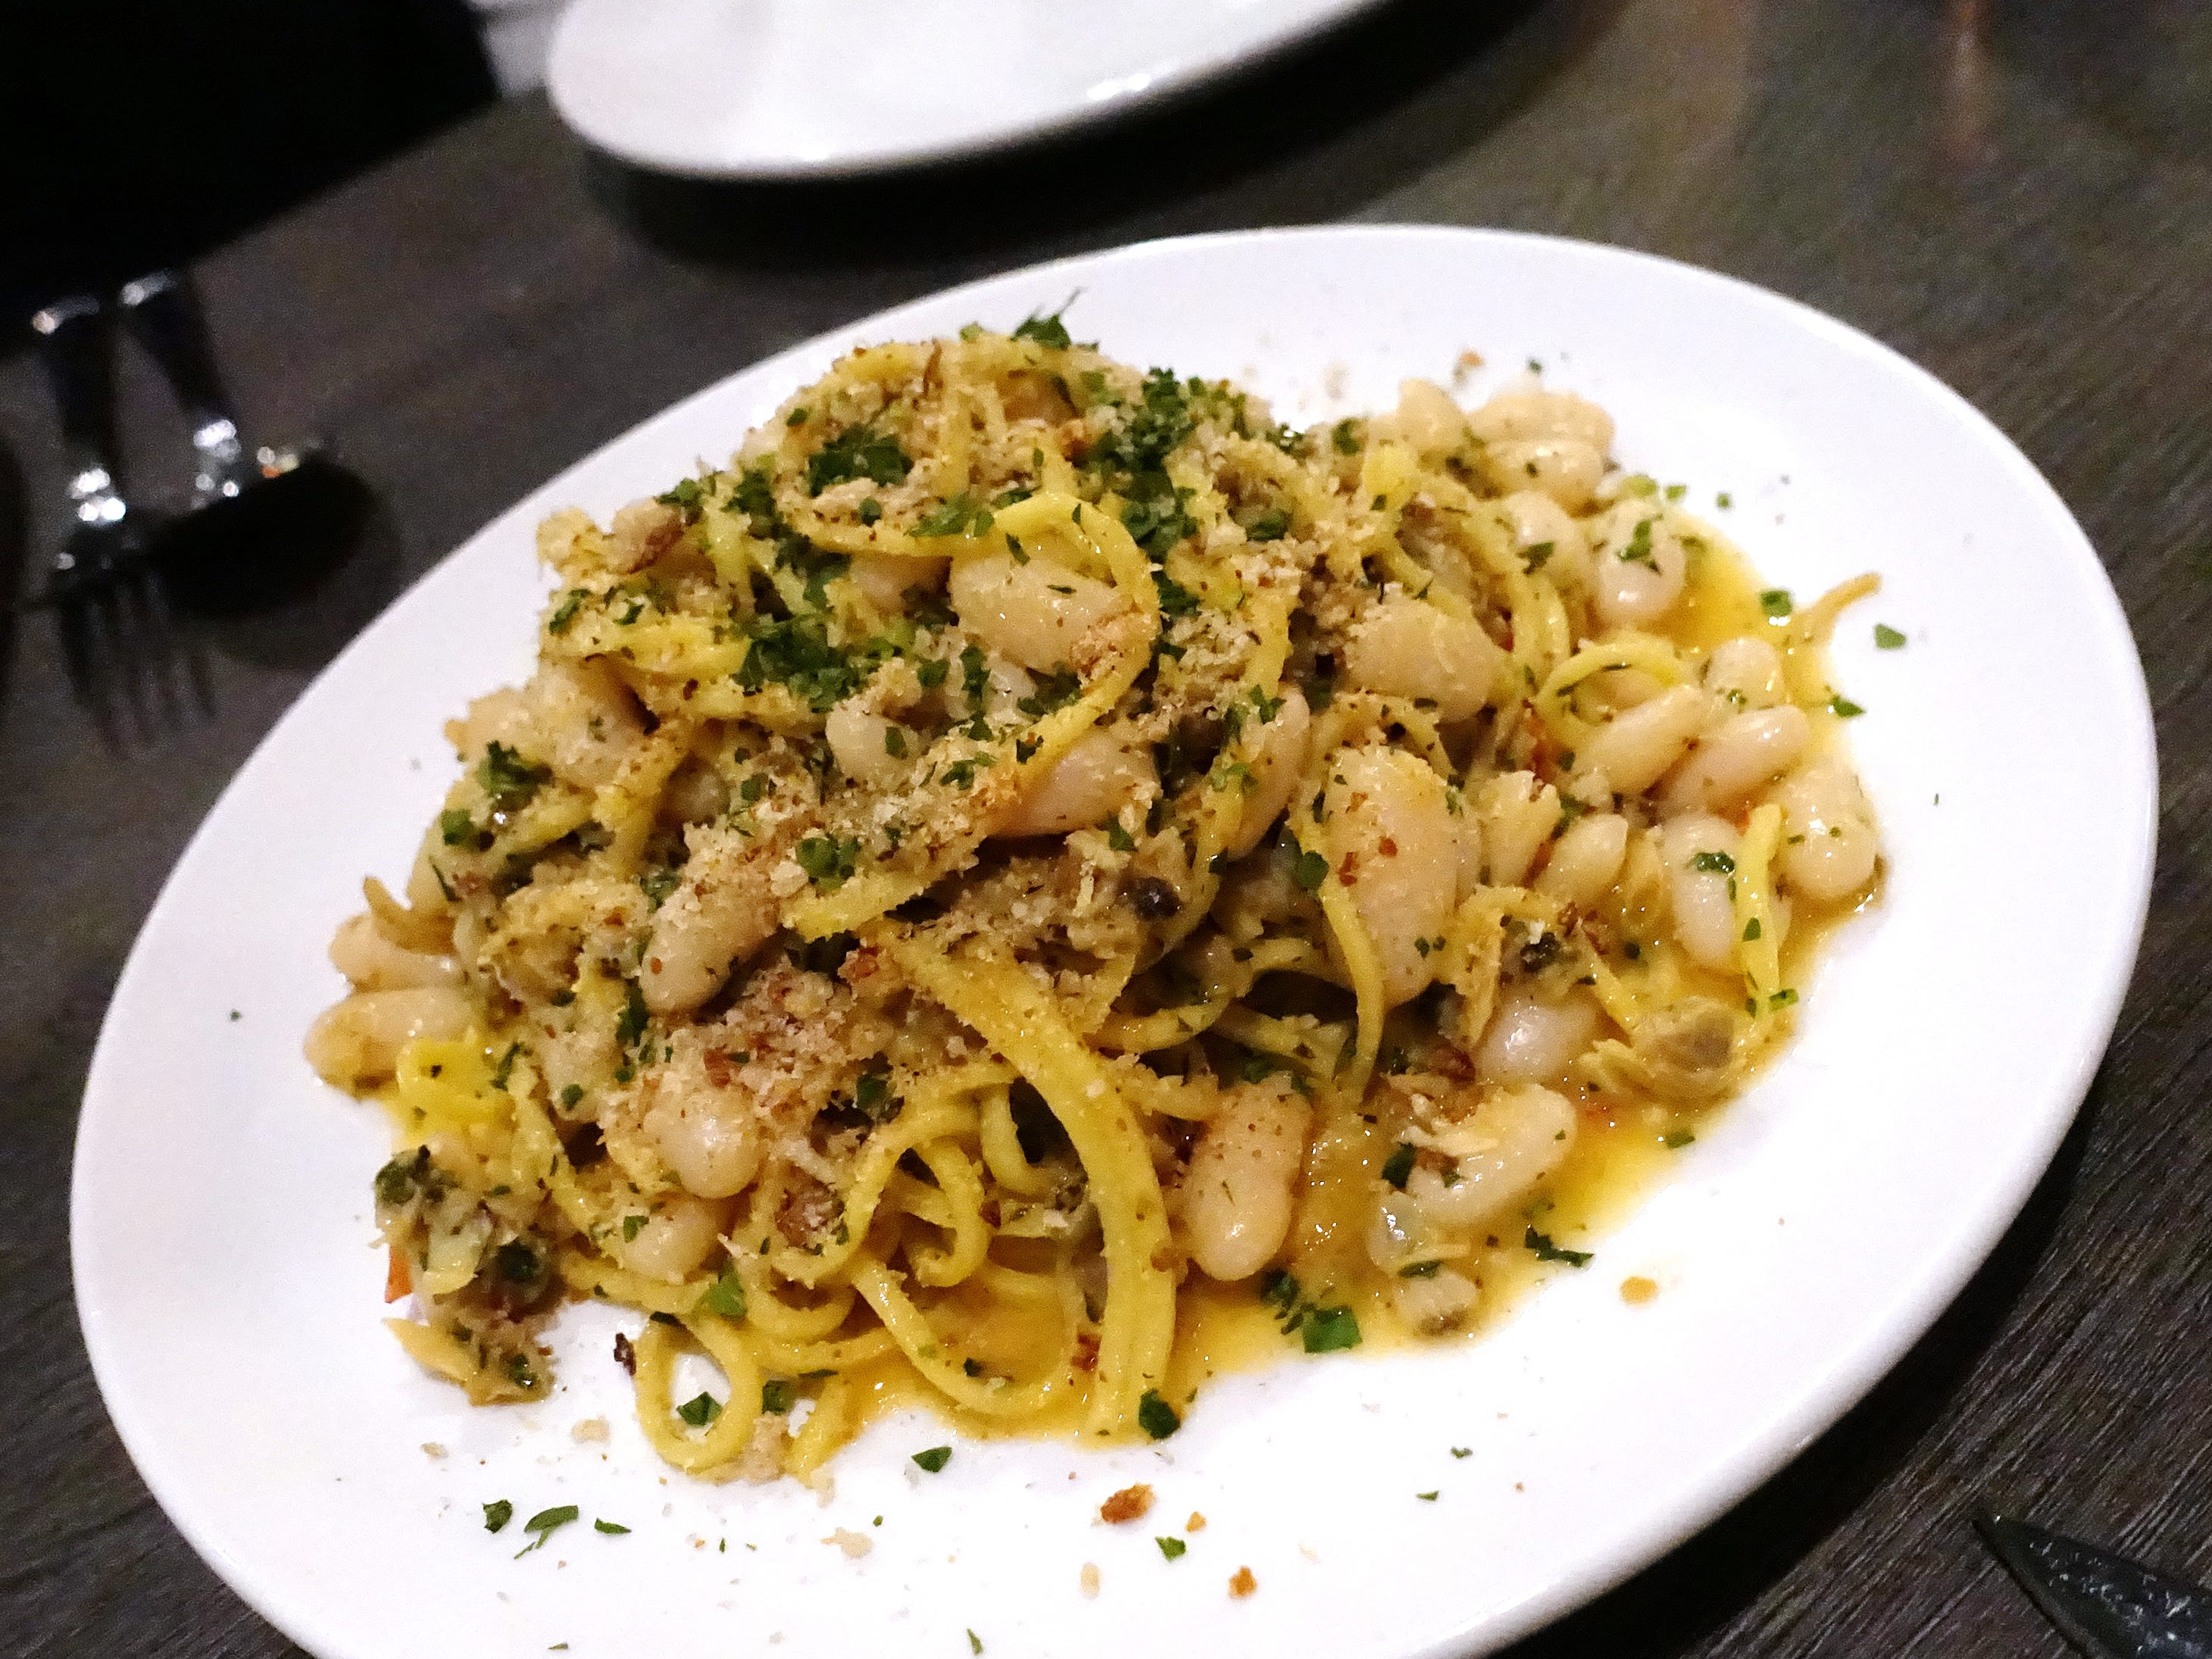 Spaghetti alla chitarra with clams, cannellini beans, fermented chile and breadcrumbs at Hush Public House in Scottsdale.